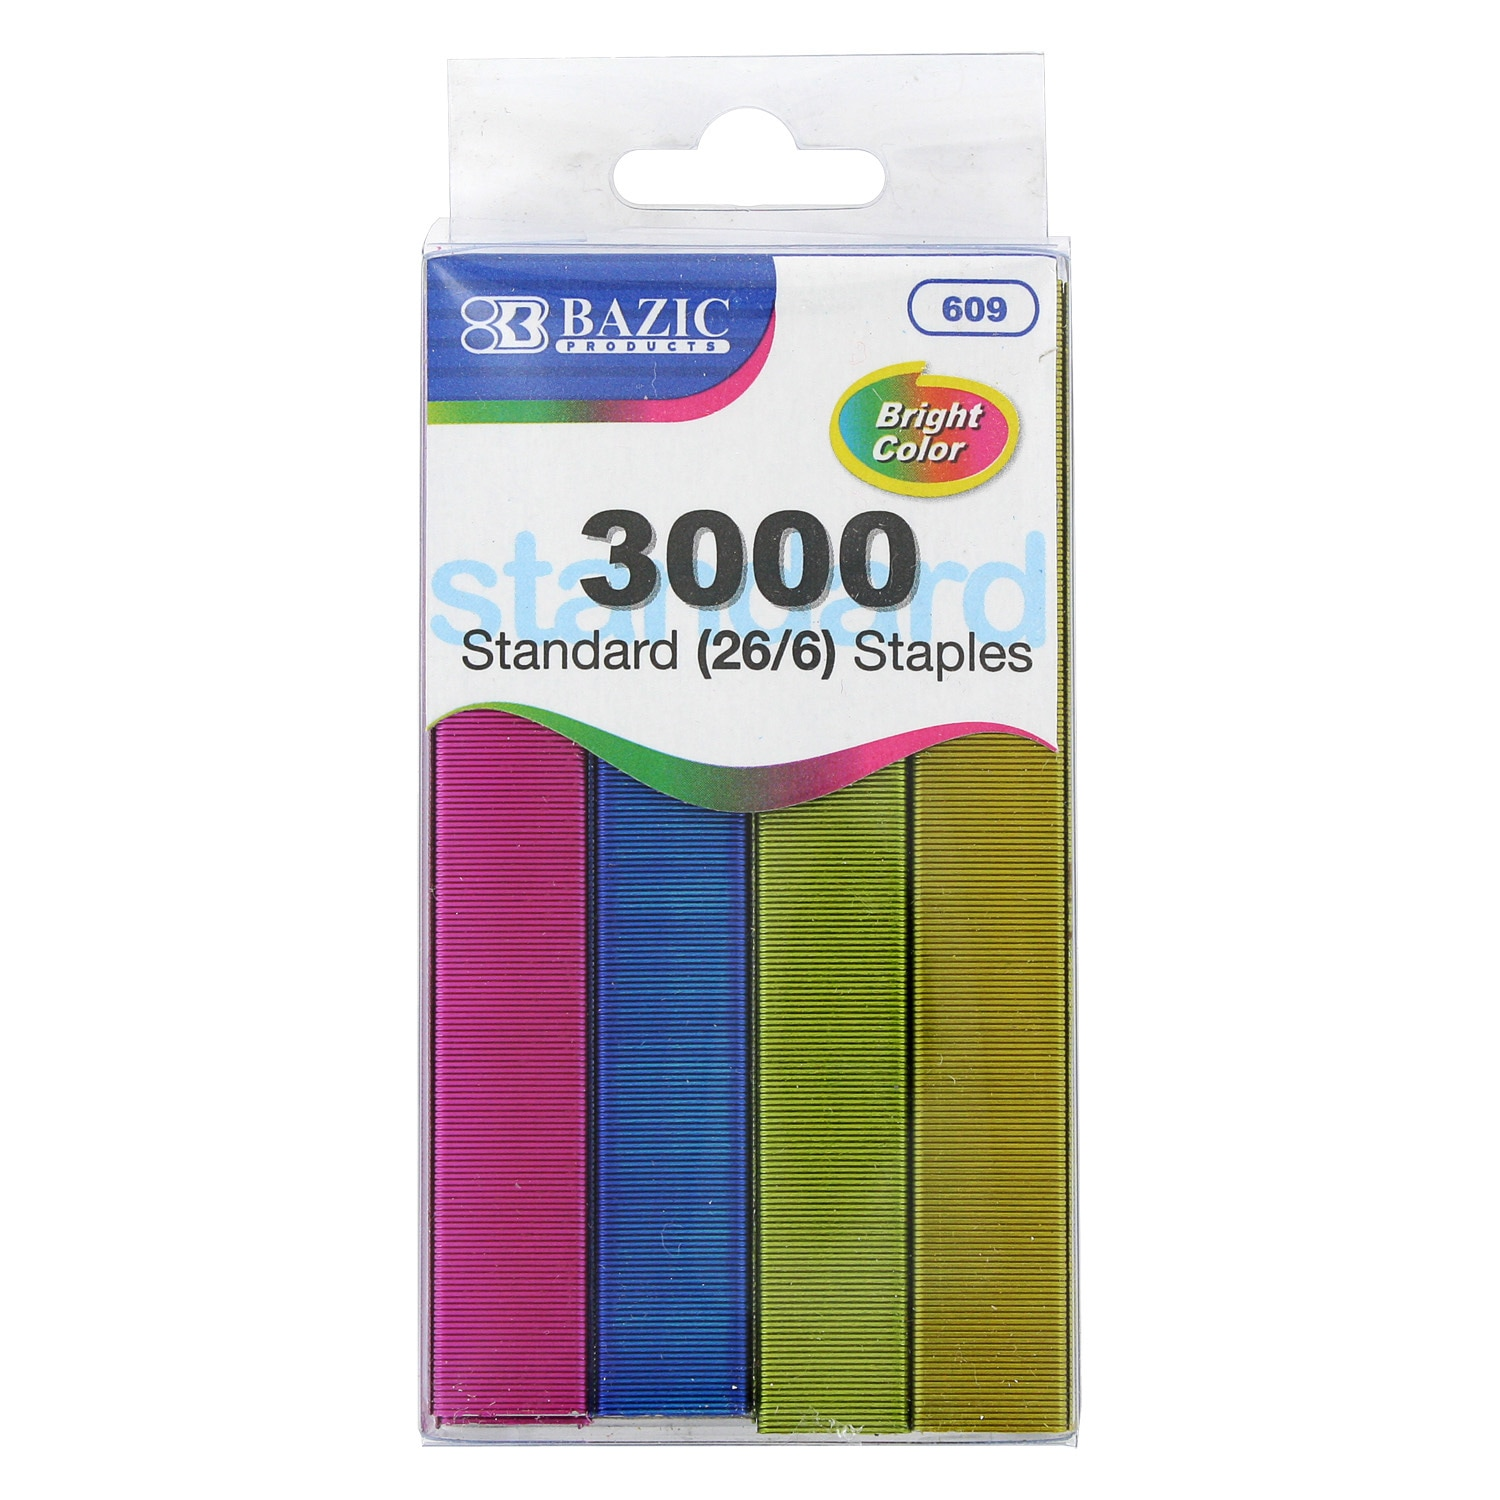 Standard 26/6 Assorted Color Desktop Staples (Bazic Staples, Assorted Colors, Pack of 3,000), Yellow